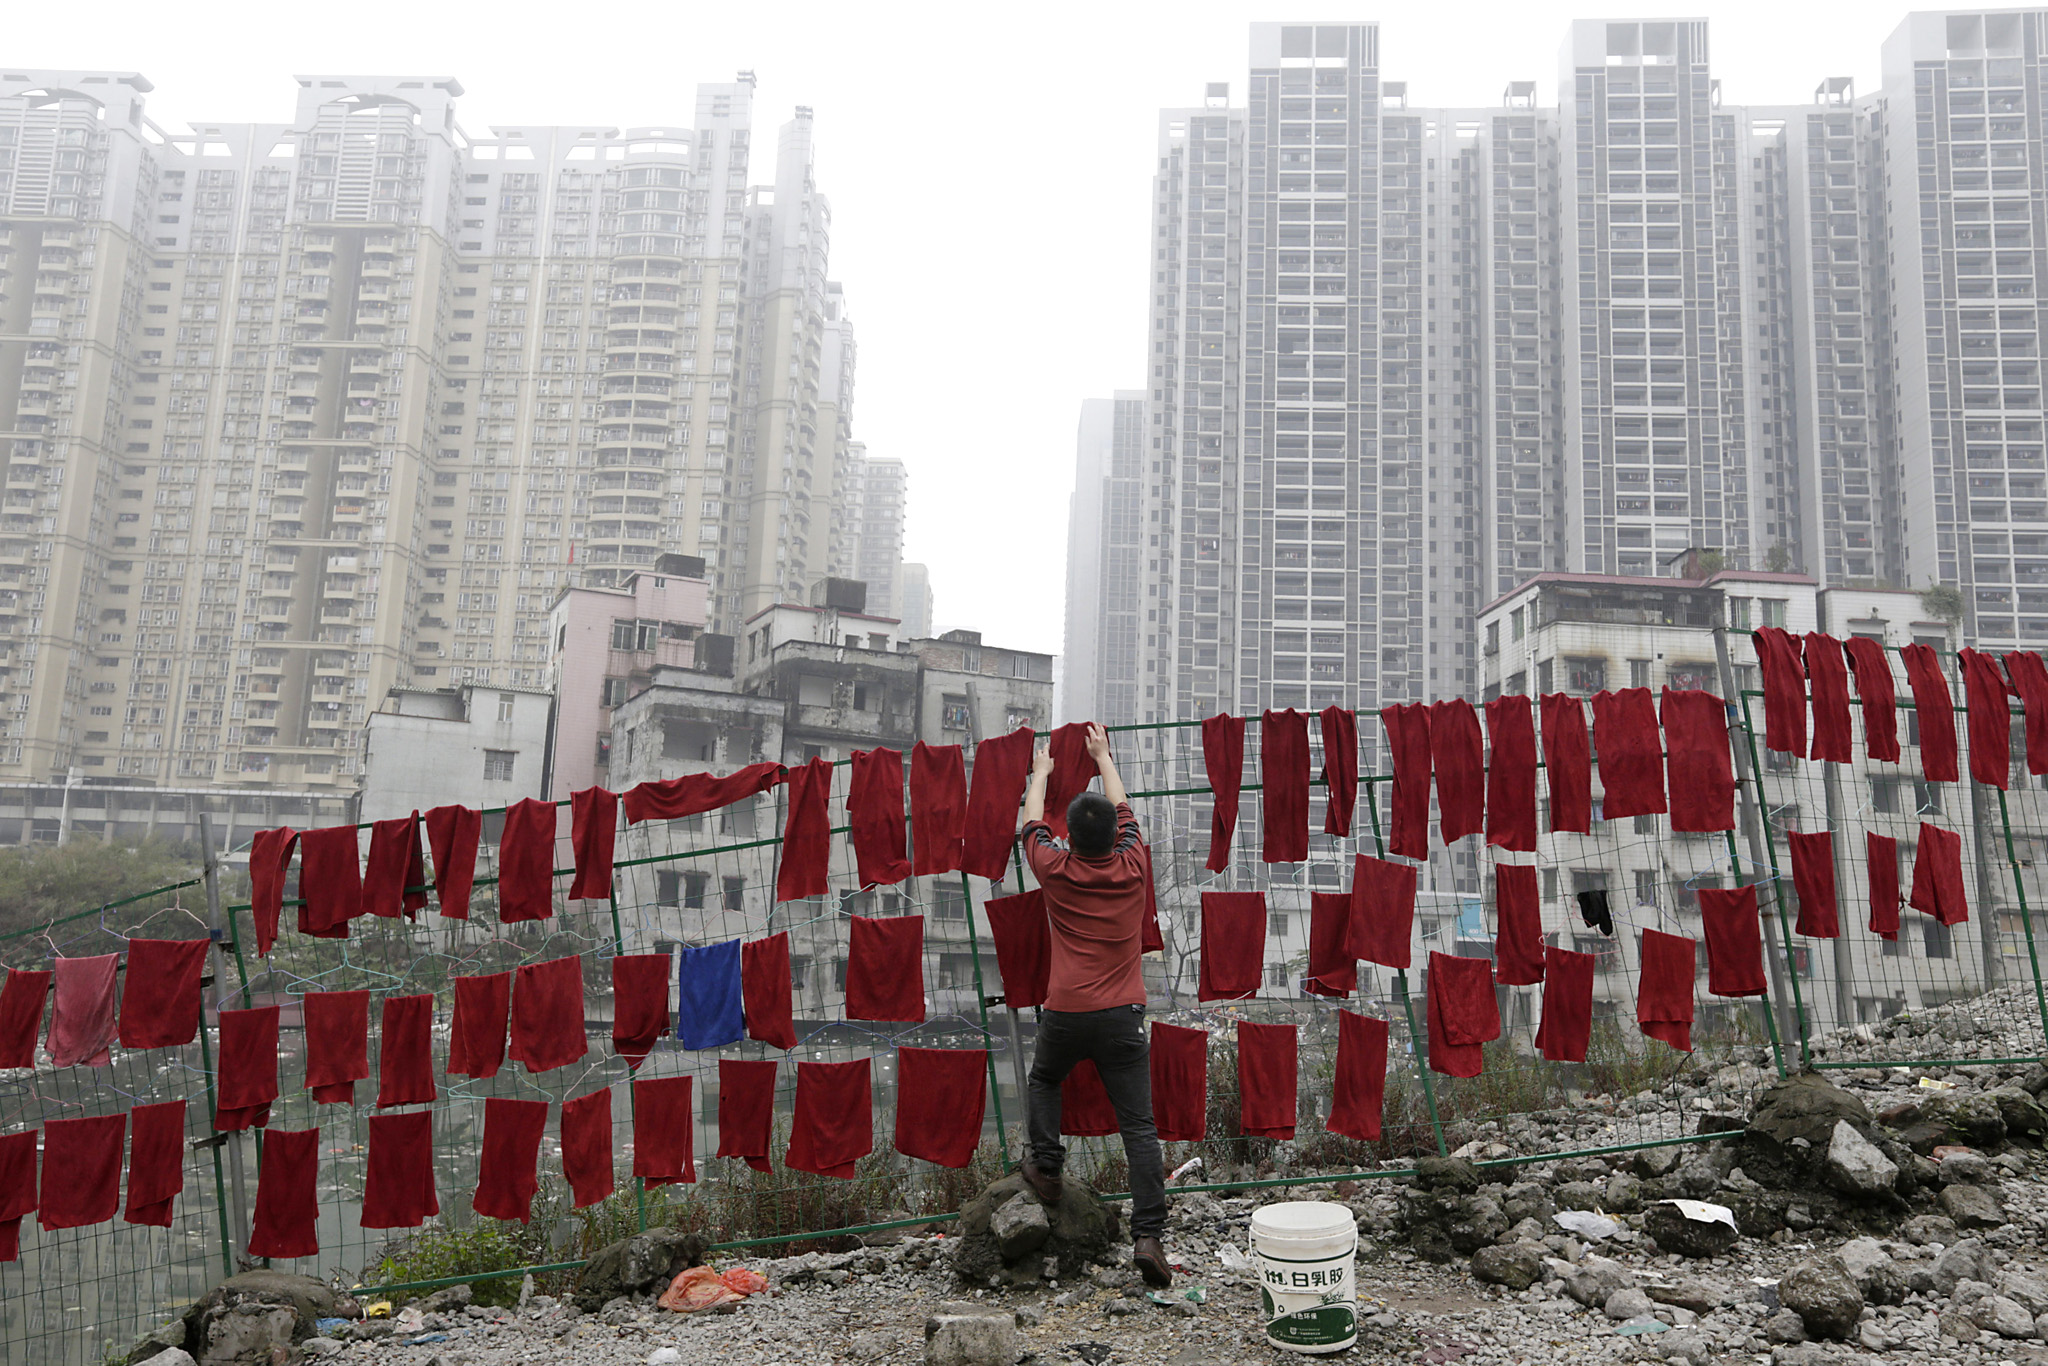 A man hangs towers on fences in an abandoned village near buildings of a residential compound in Guangzhou...A man hangs towers on fences in an abandoned village near buildings of a residential compound in Guangzhou, Guangdong Province, China, March 18, 2016. REUTERS/David Johnson